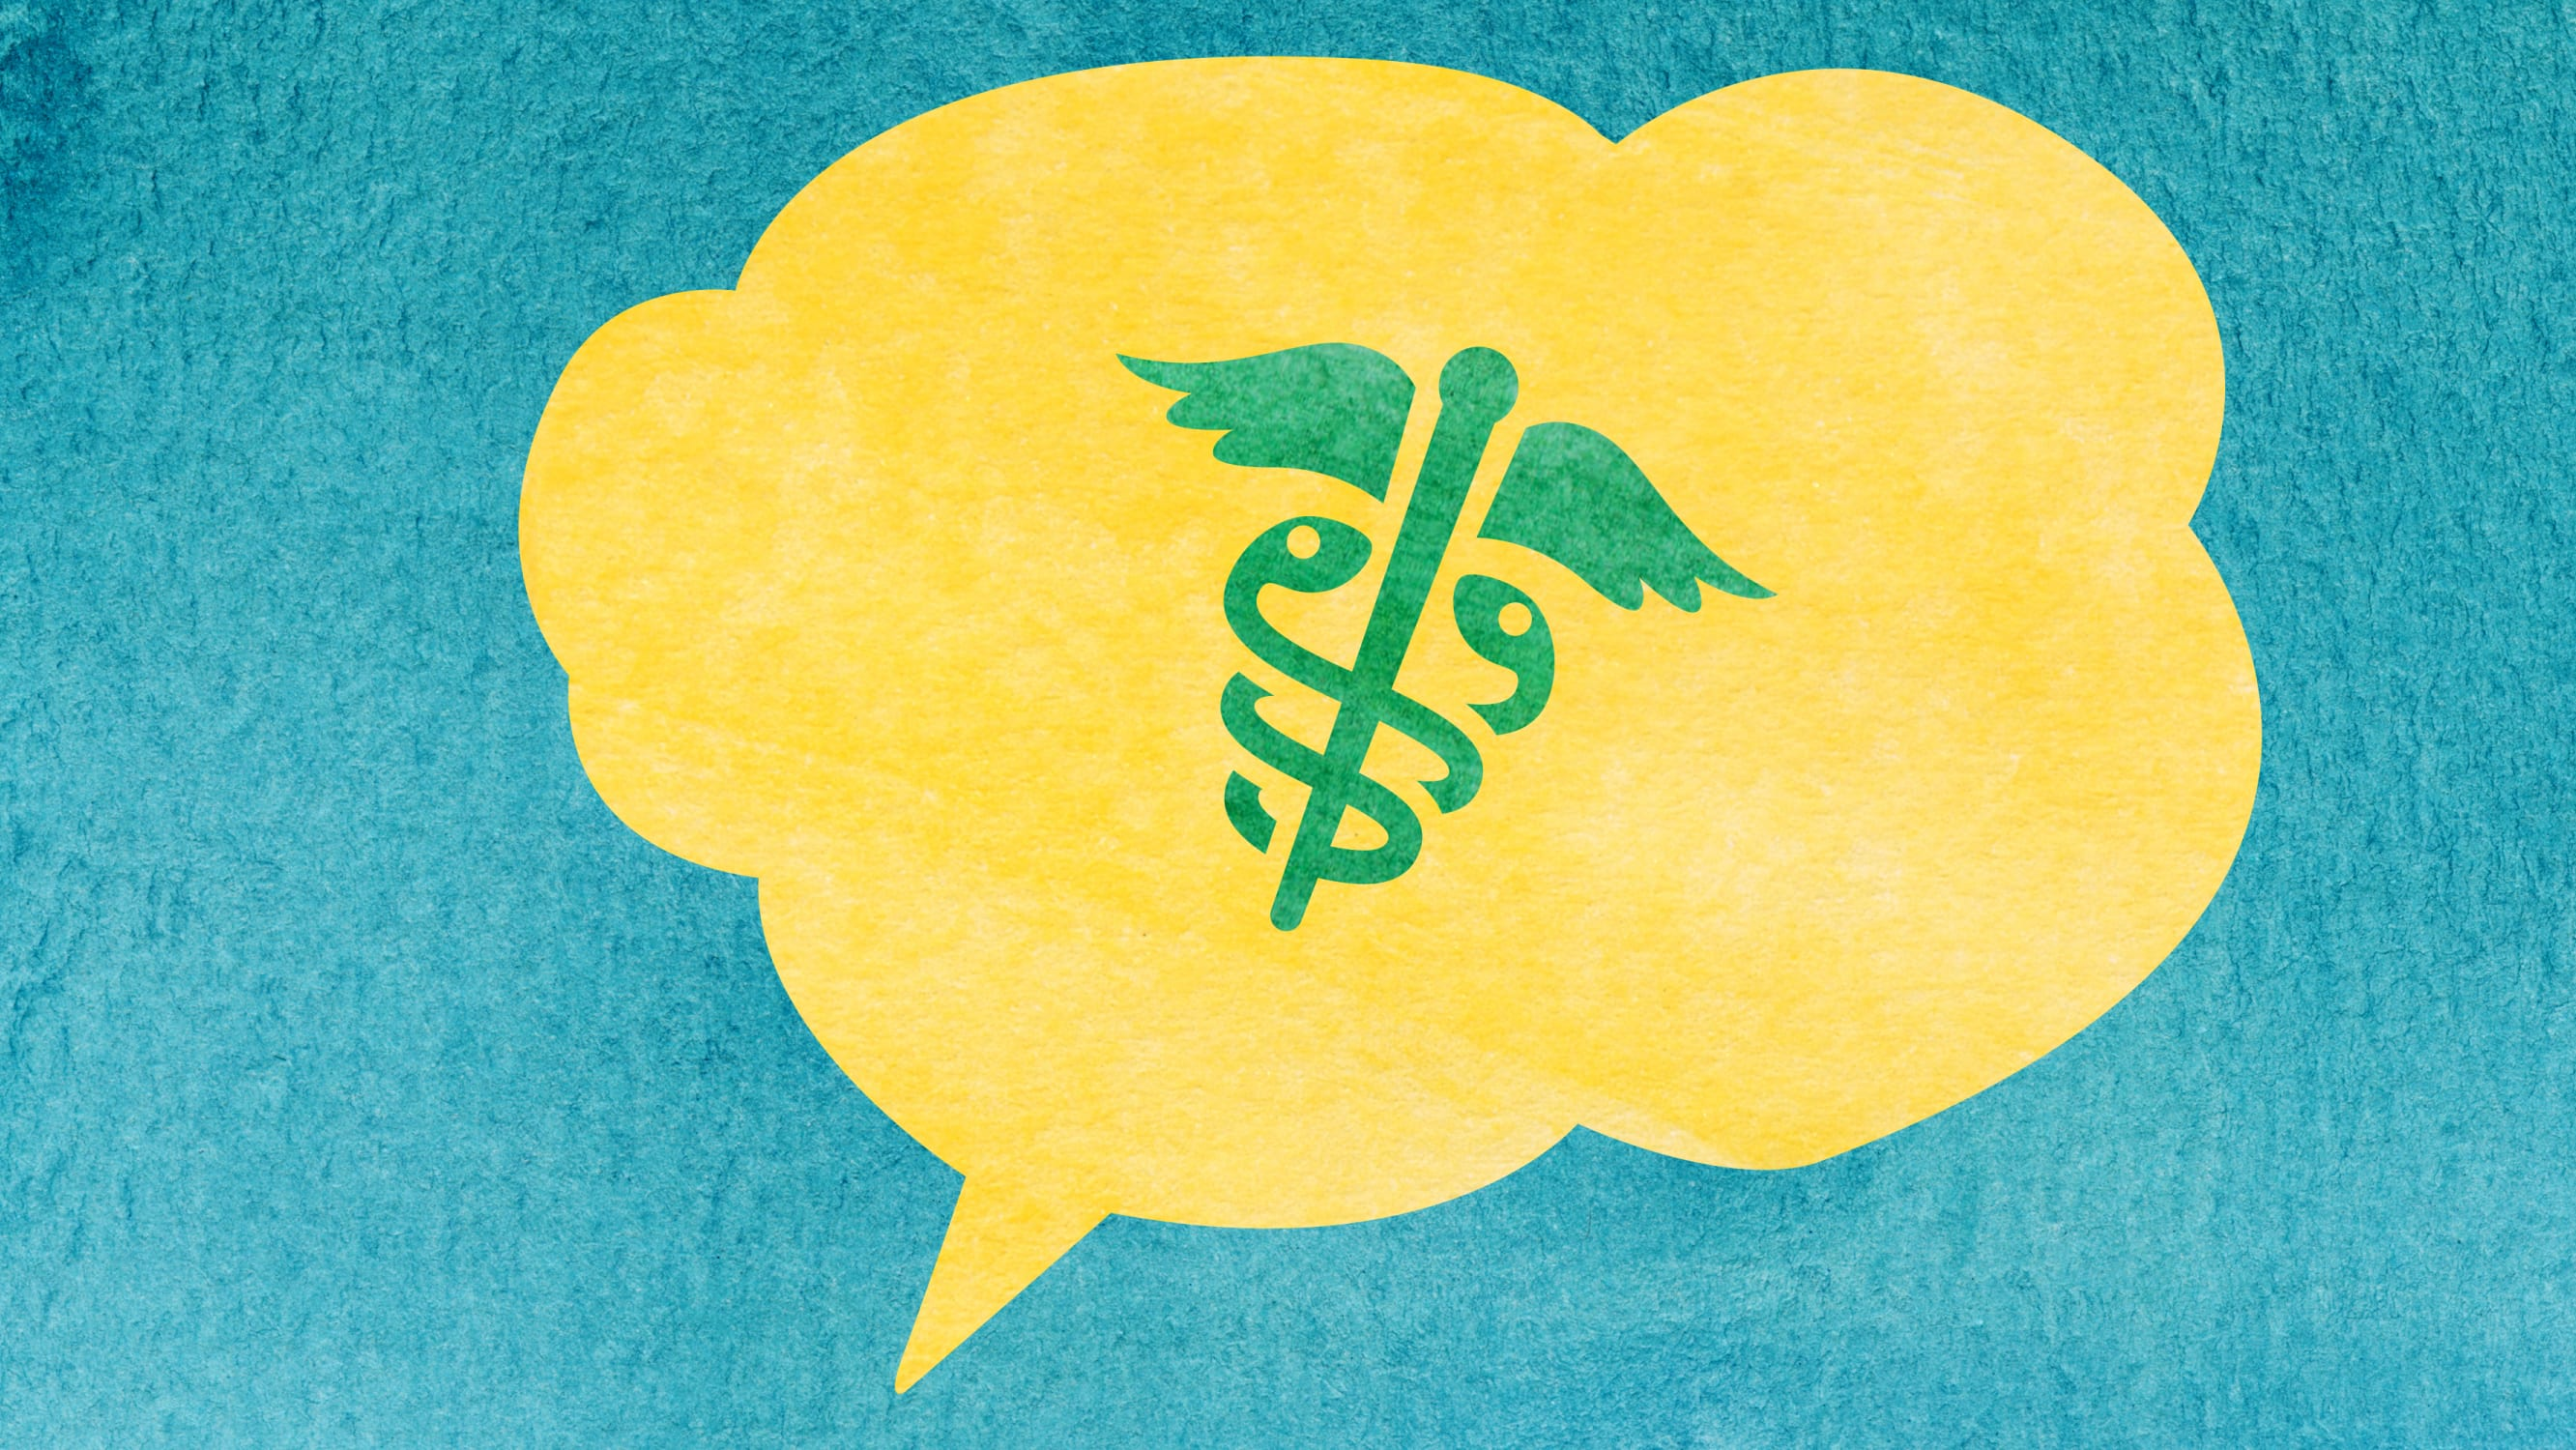 watercolor illustration of a yellow speech bubble with caduceus inside on a teal background